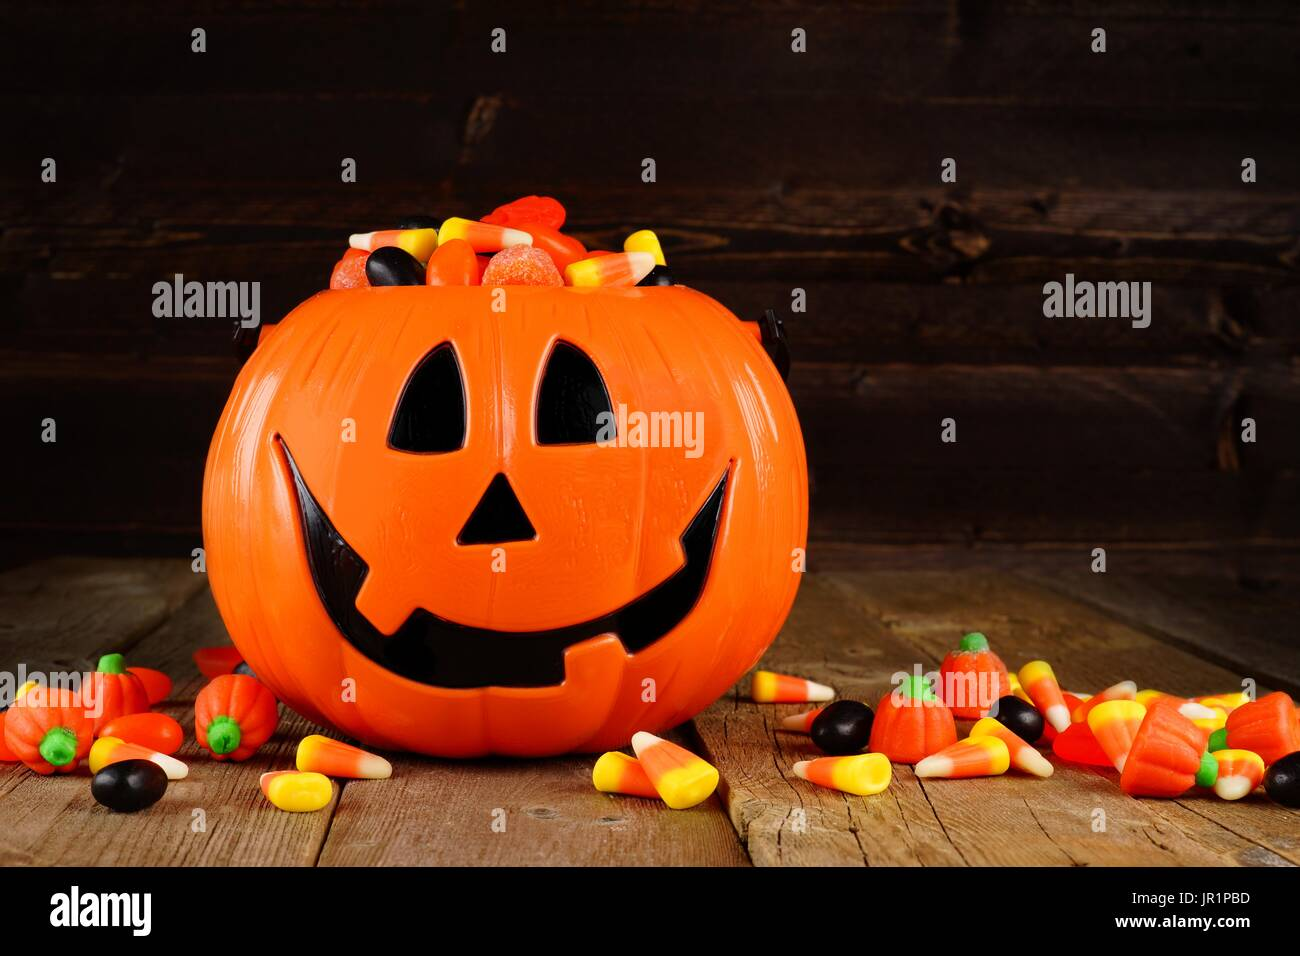 halloween jack o lantern candy holder with scattered candy on rustic